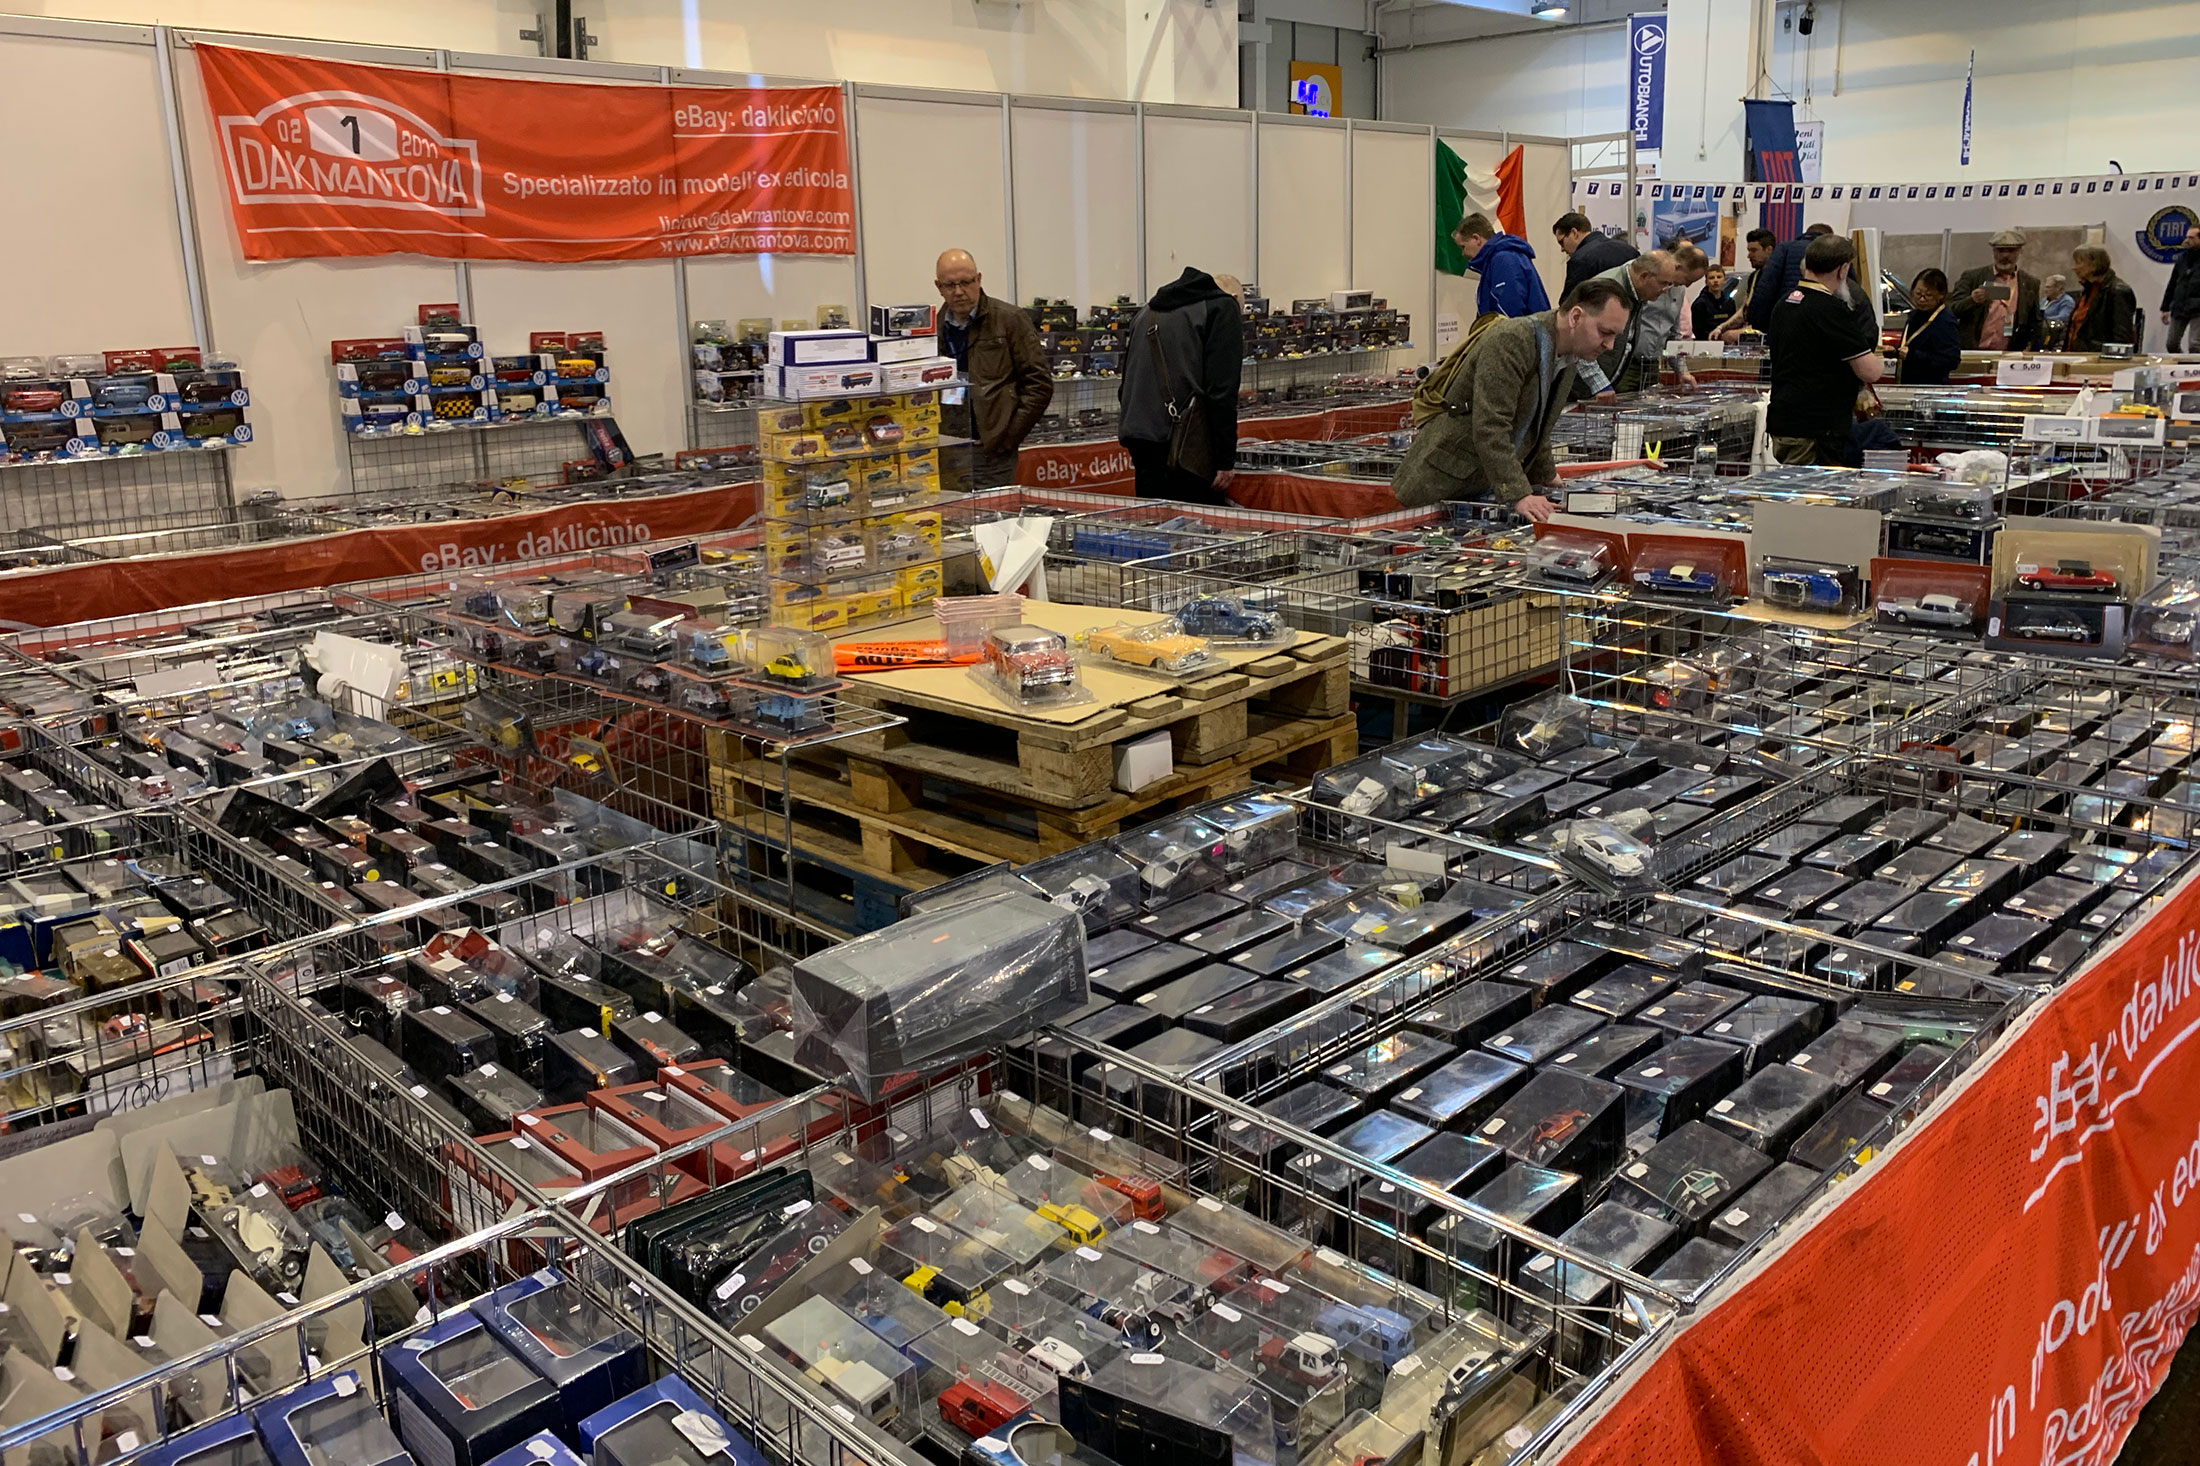 As mentioned previously, so much to buy at this show - huge stalls of diecast EVERYWHERE. I'm actually surprised I didn't bring back much LOL. I was on my best behavior.